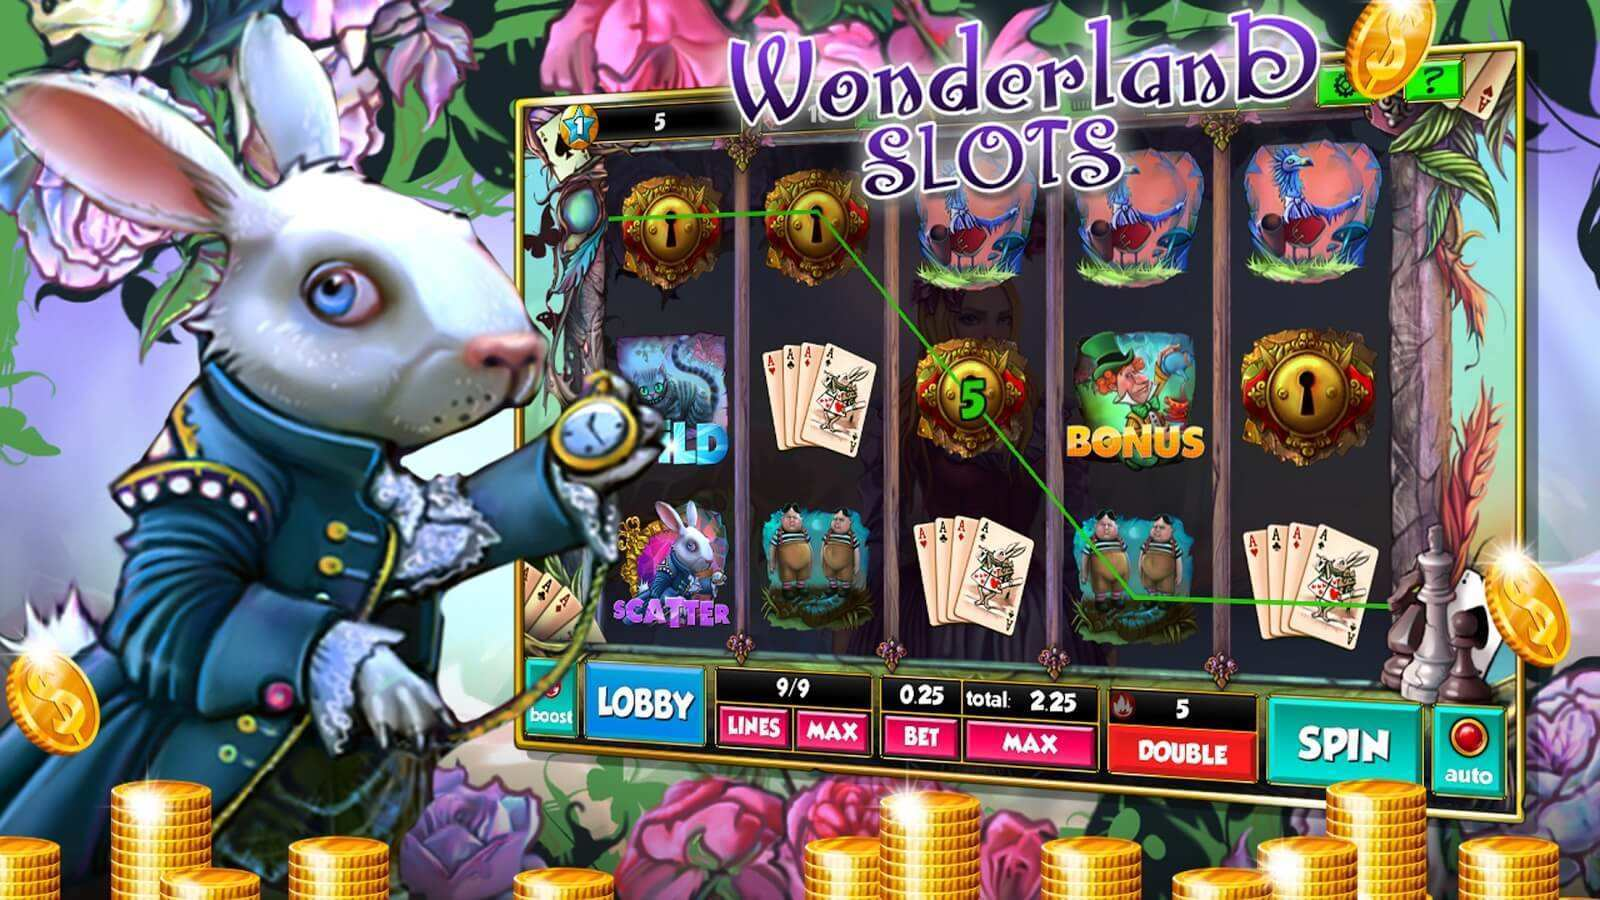 Play Kong The 8 Wonder Slots Online at Casino.com Canada